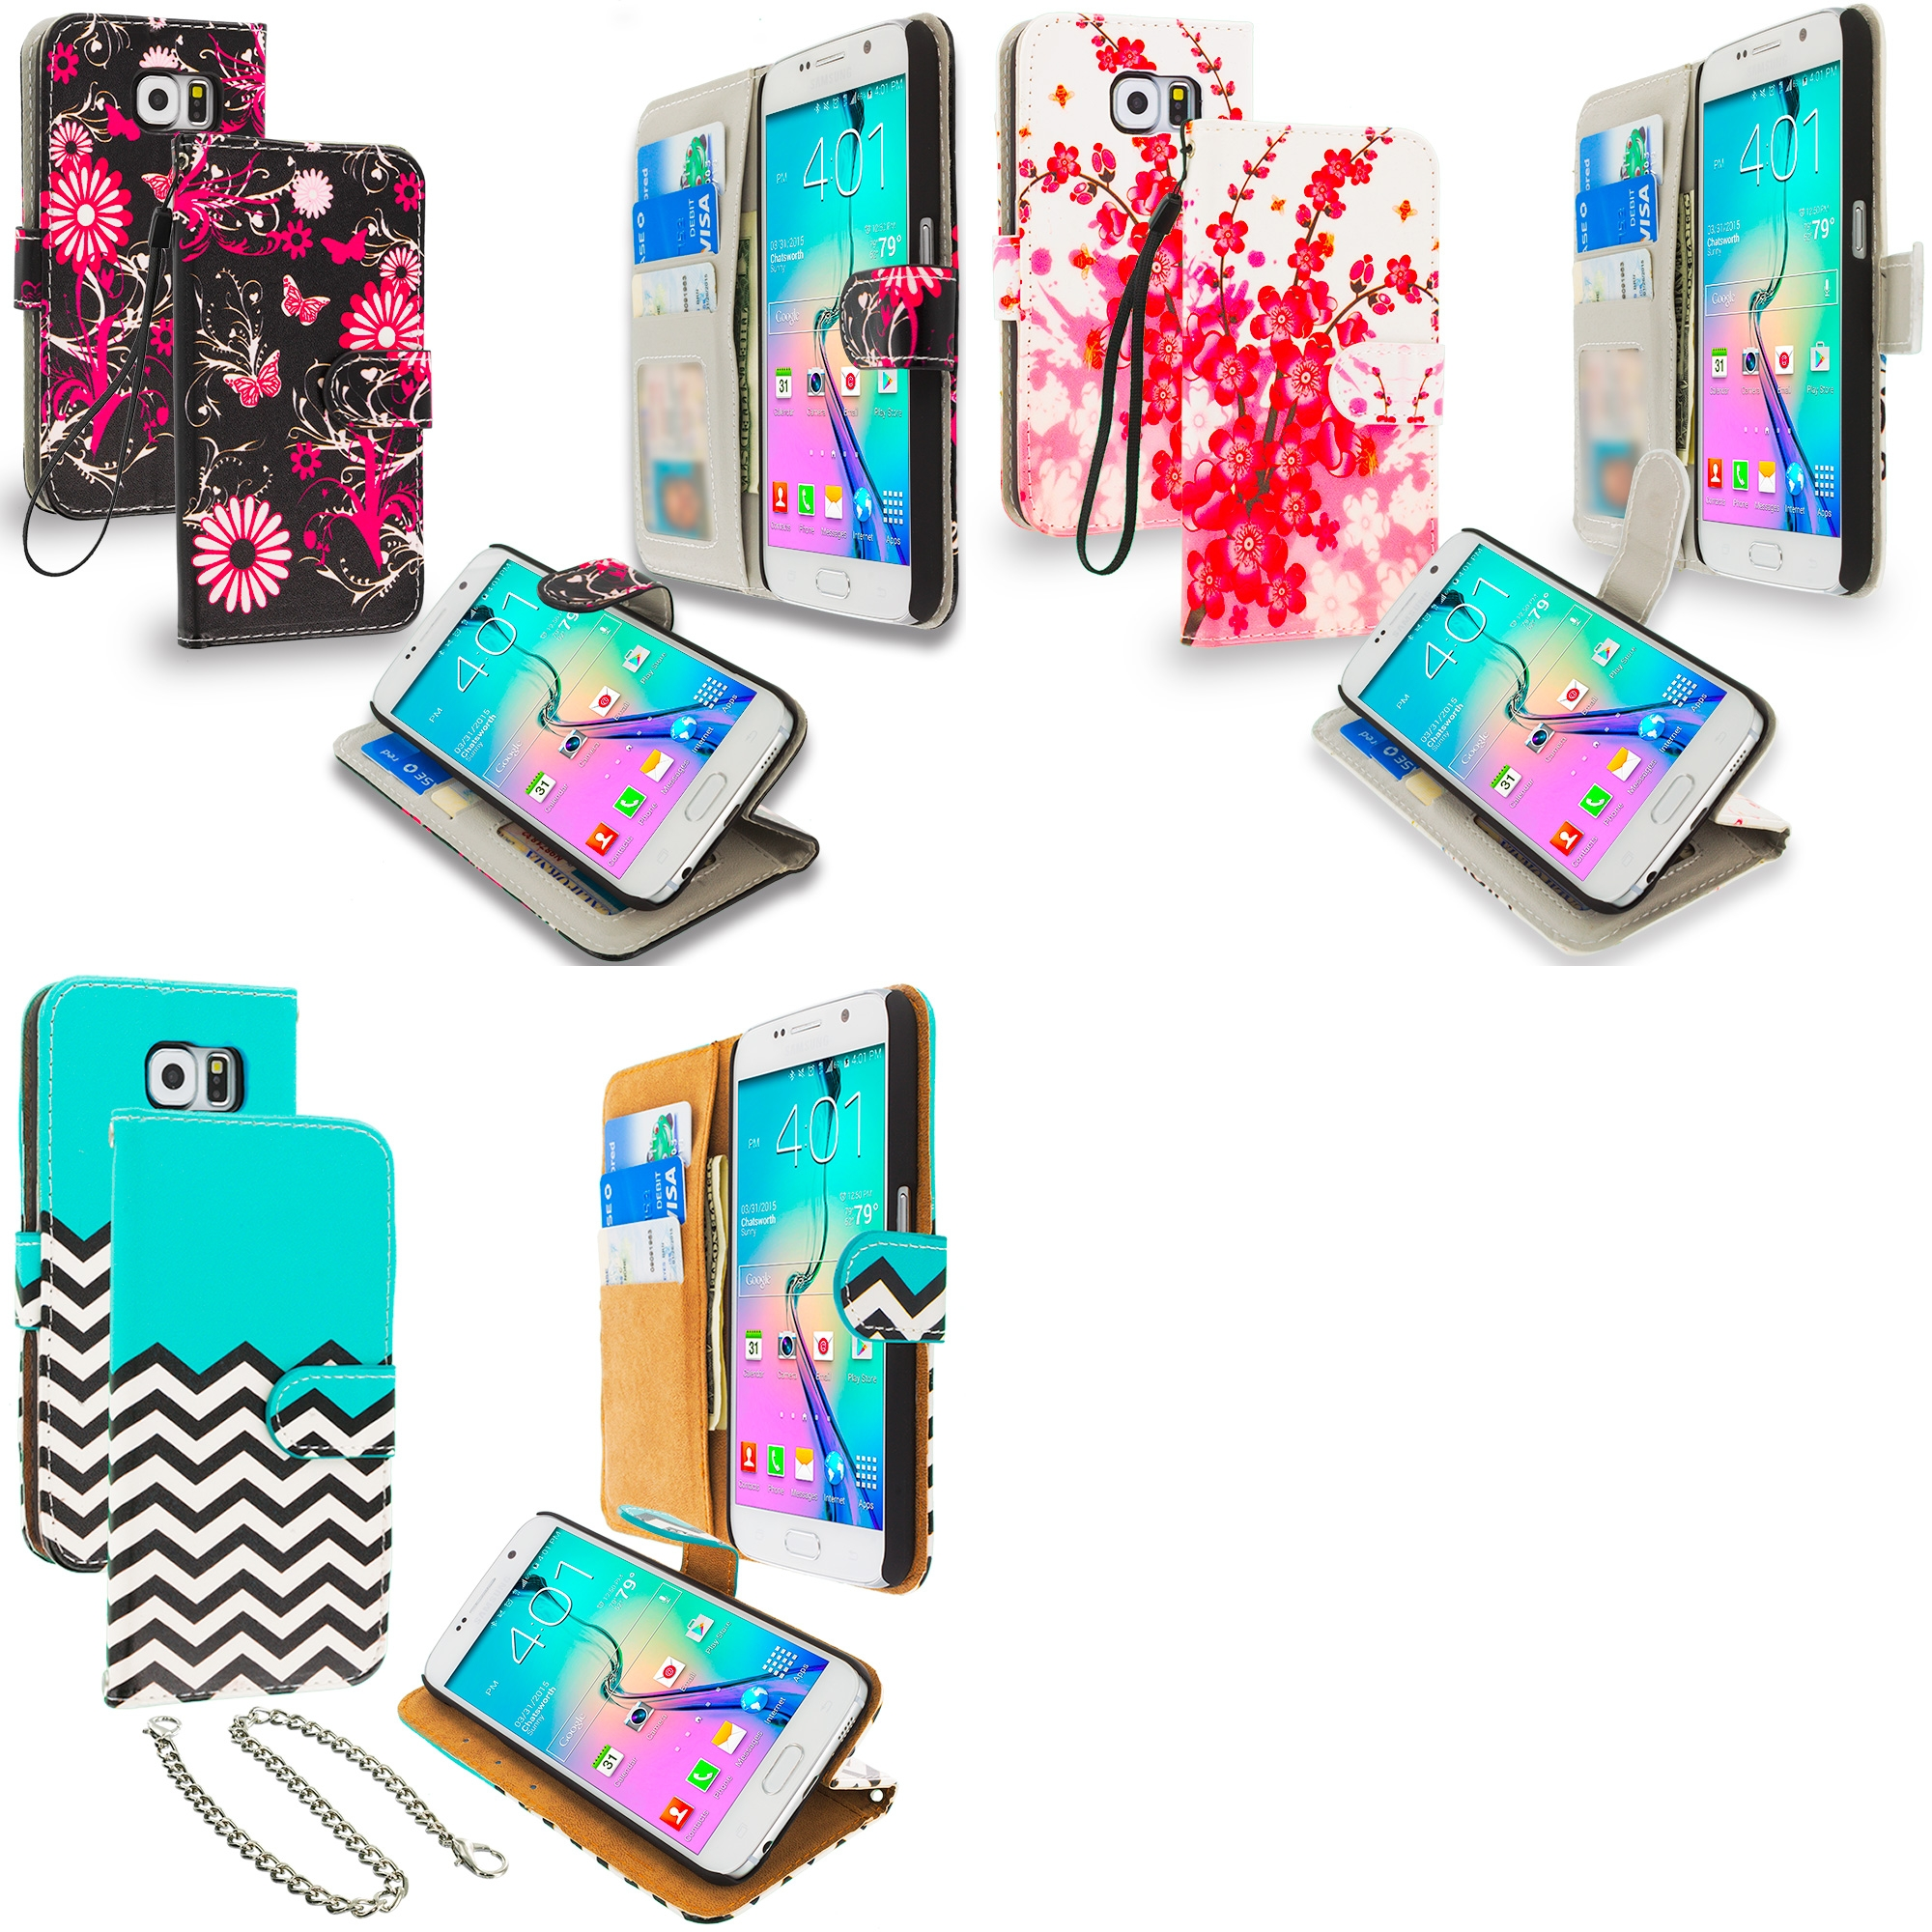 Samsung Galaxy S6 3 in 1 Combo Bundle Pack - Zebra Leather Wallet Pouch Case Cover with Slots